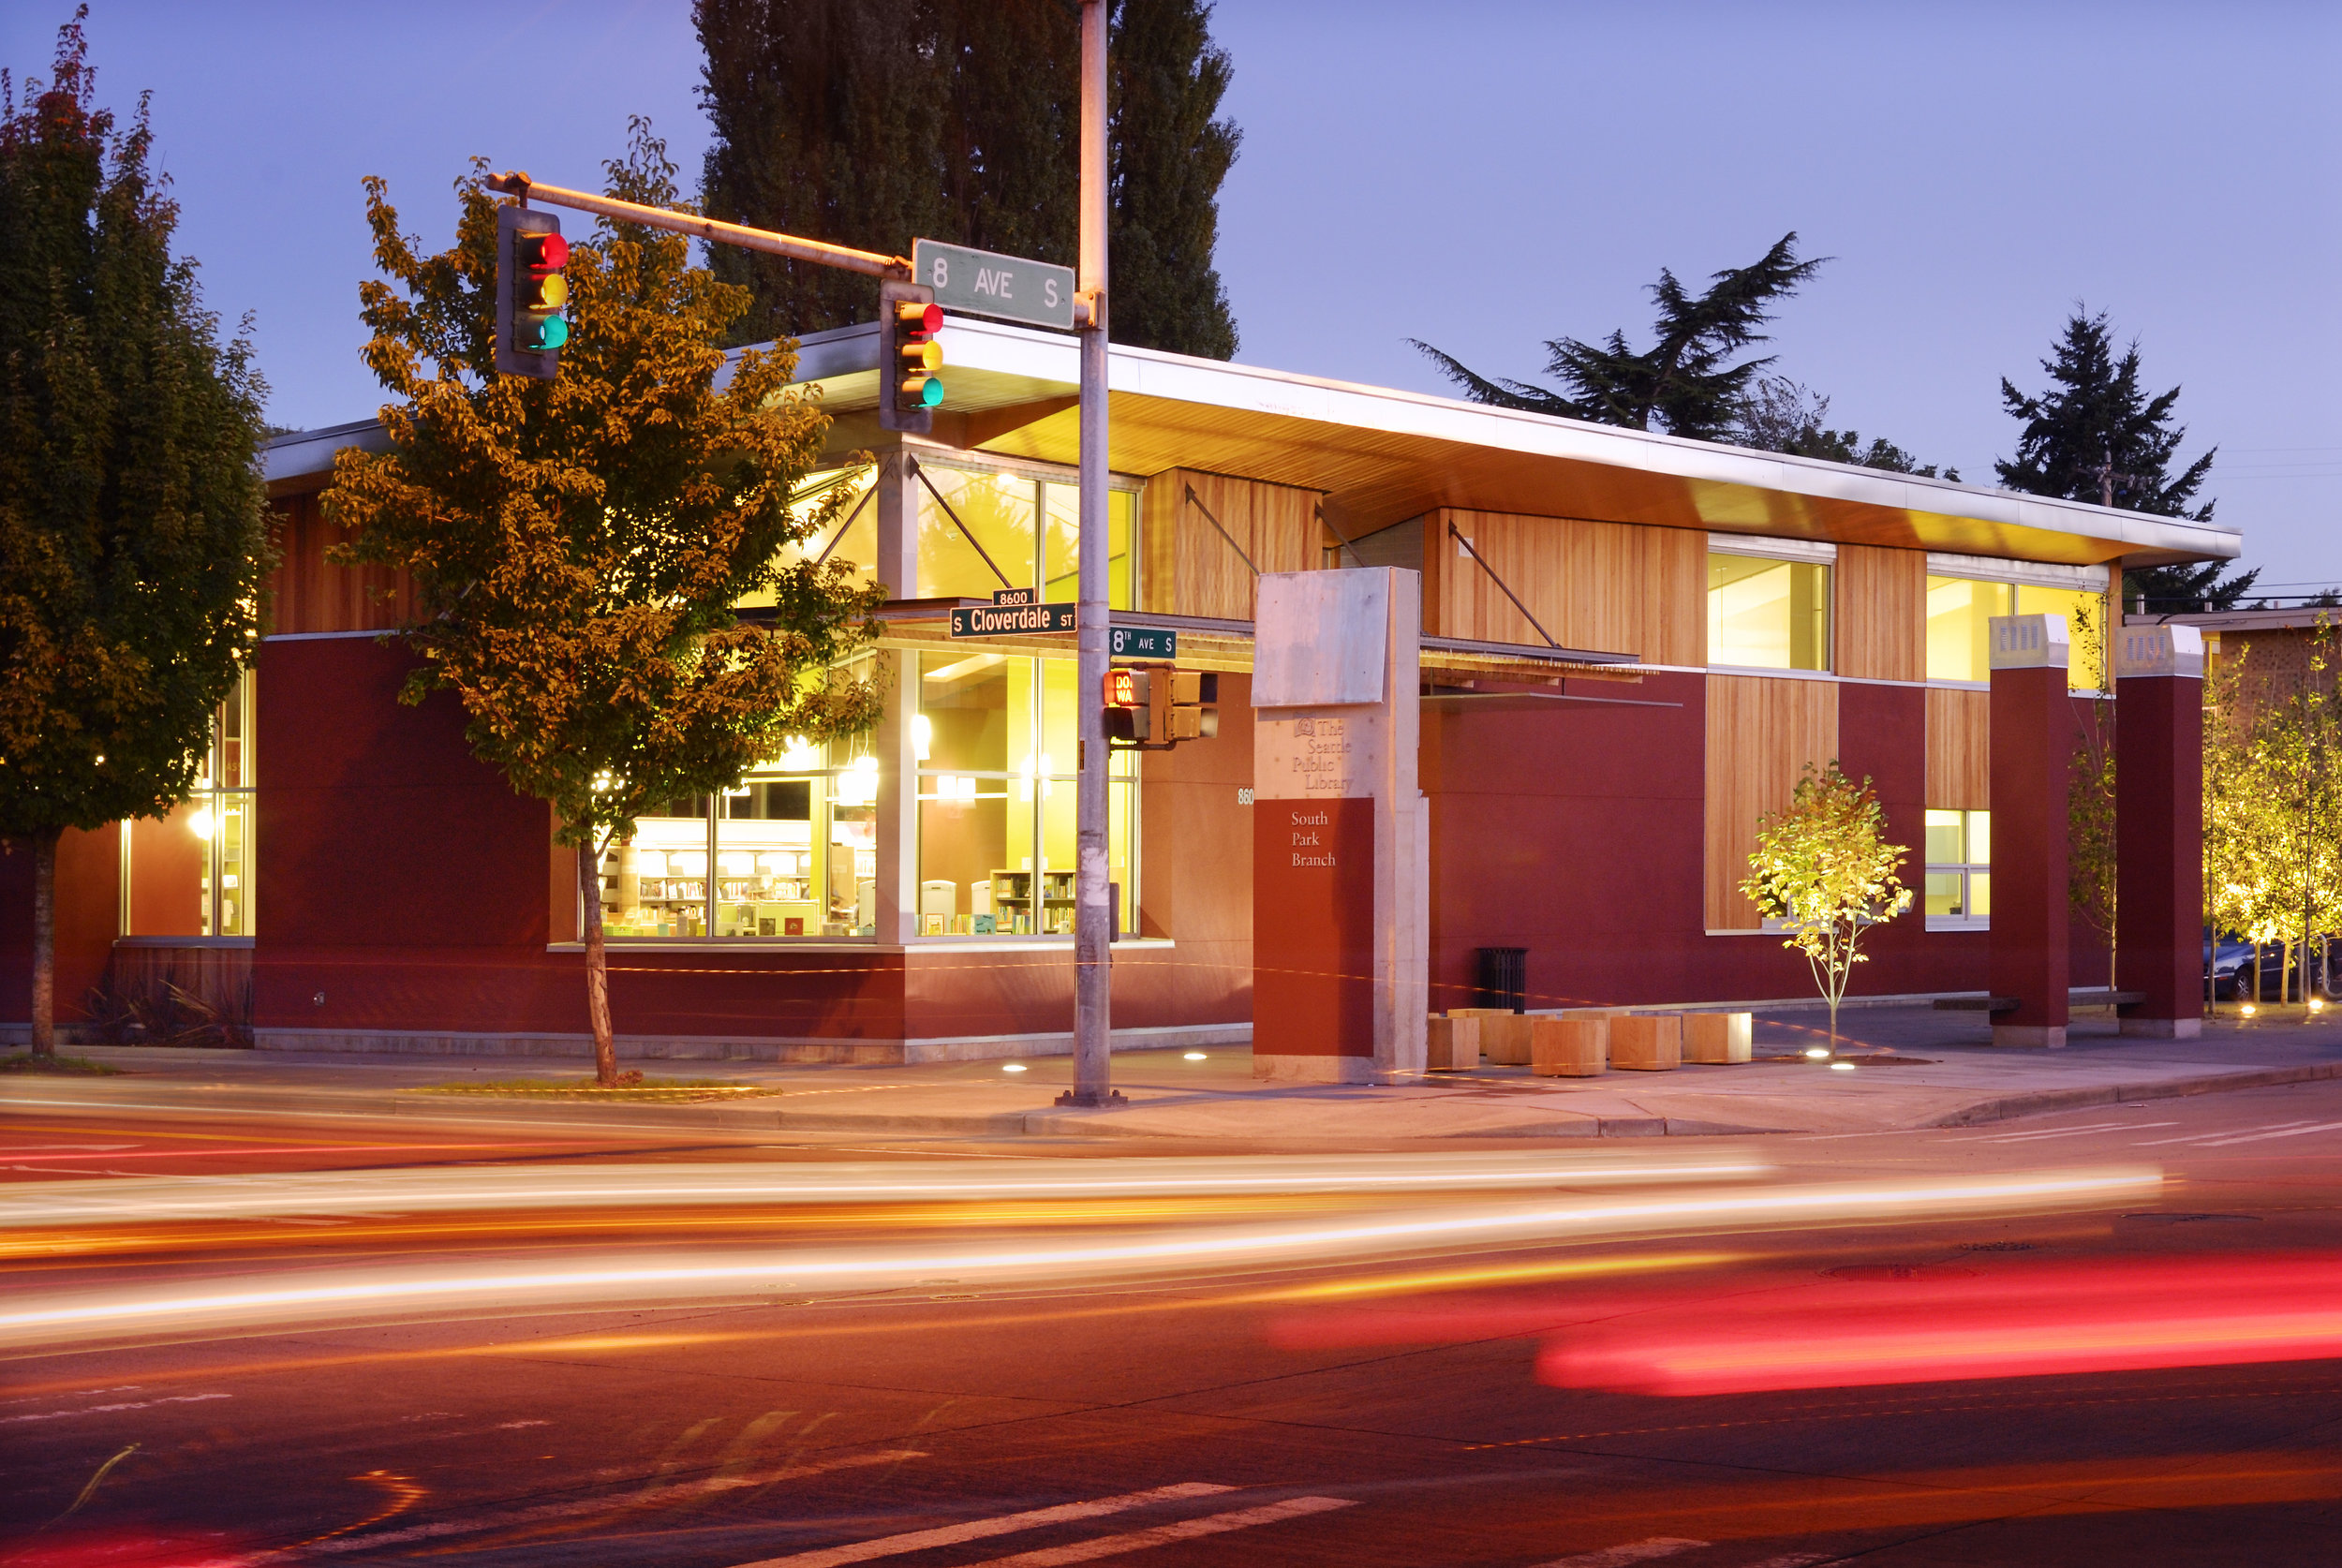 SOUTH PARK LIBRARY -